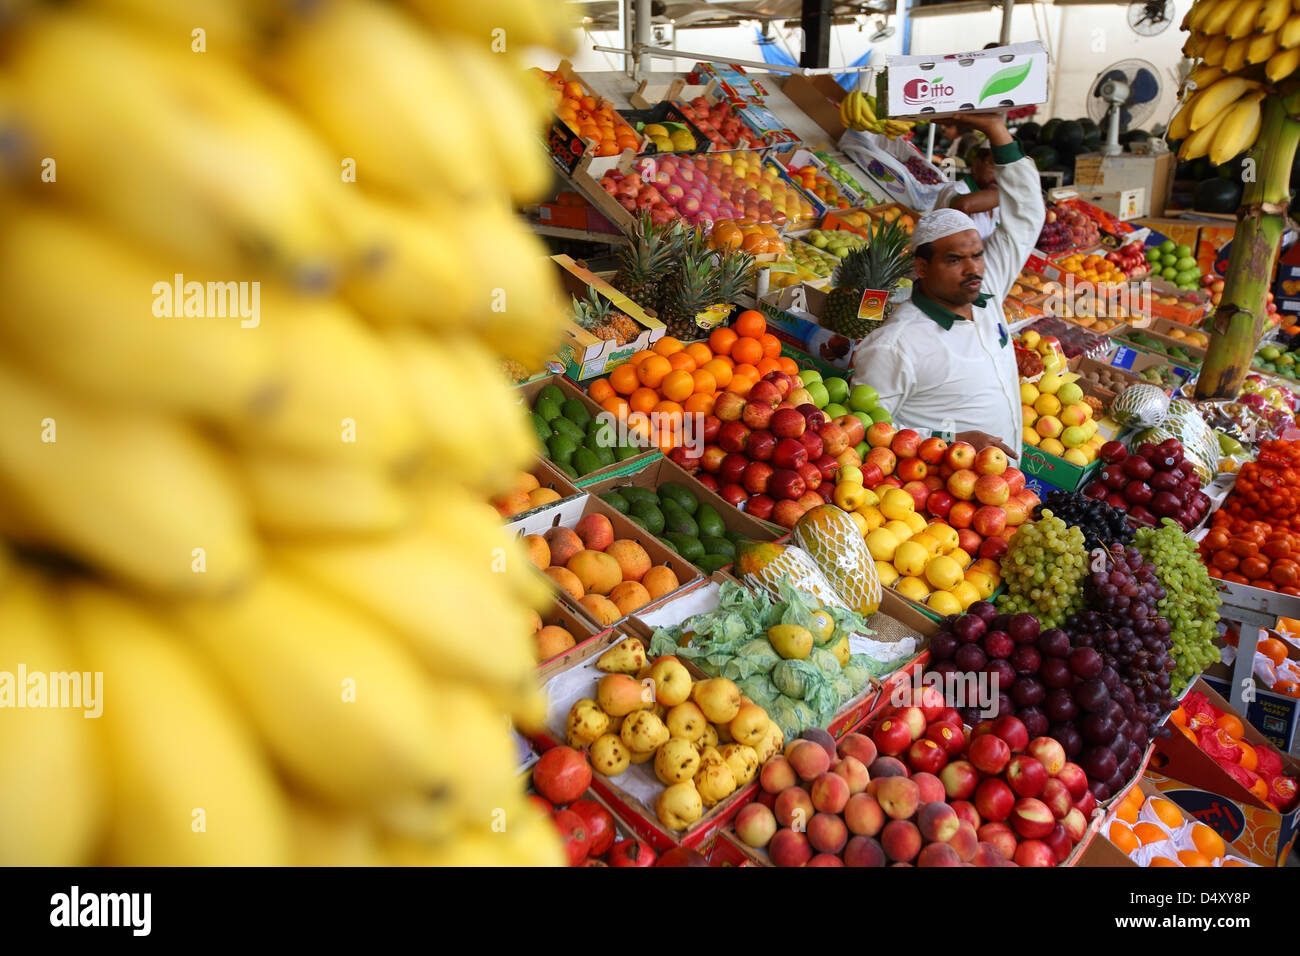 Man carrying box au marché de fruits, Dubaï, Émirats Arabes Unis Photo Stock